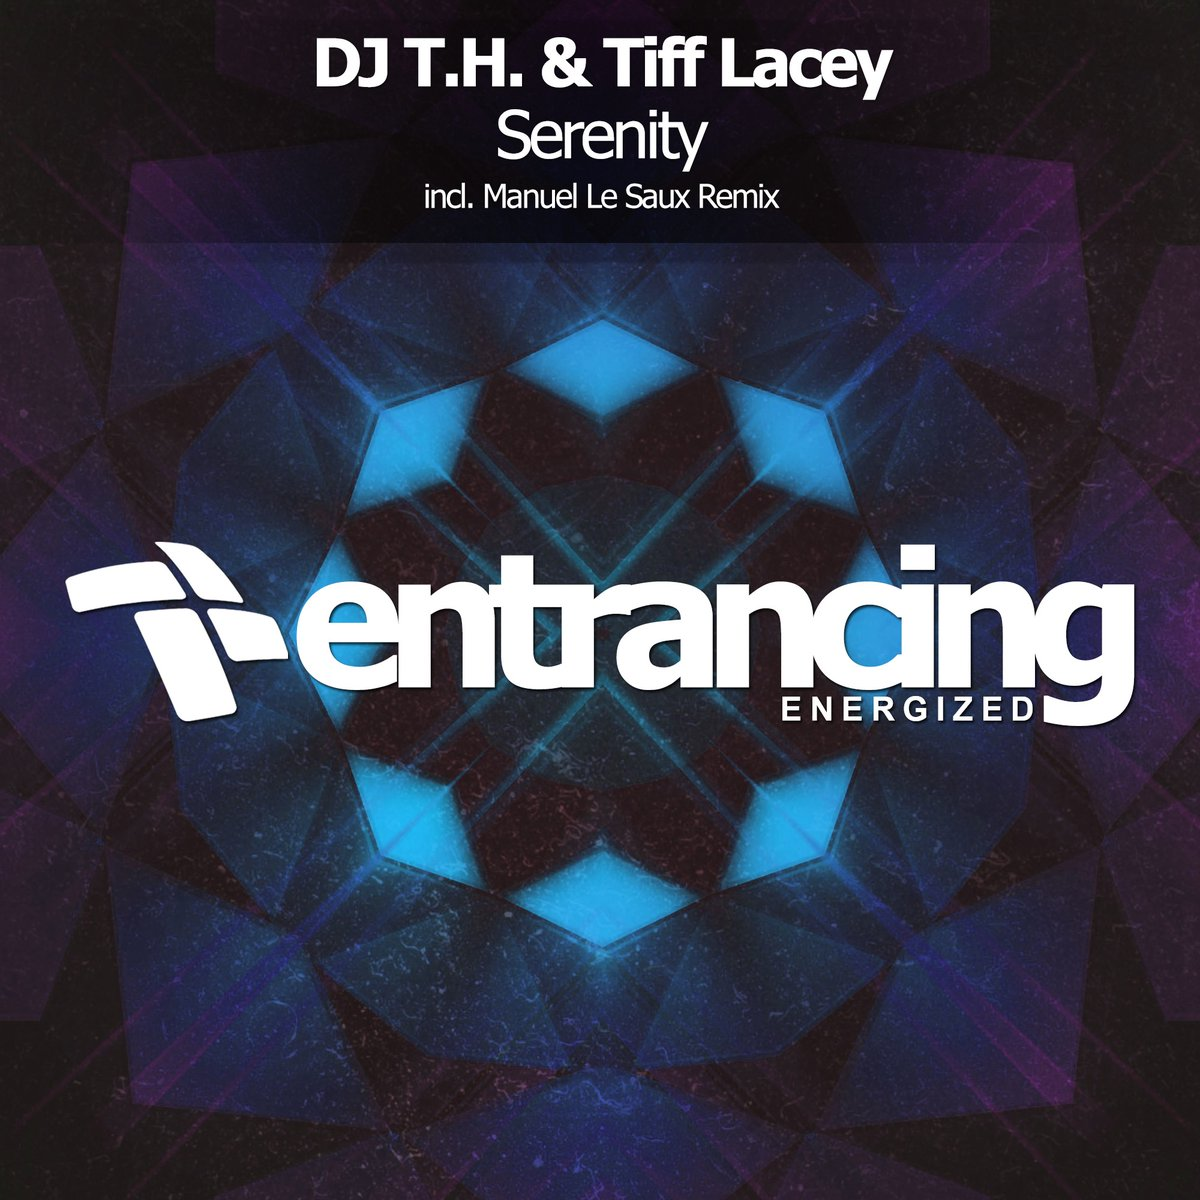 "She sung for the biggest stars yet like @atbandre, @cosmicgate, @pauloakenfold, @alyandfila and many more so i'm more then happy to have finally this collaboration ""Serenity"" with the legend @TiffLacey on my homebase @entrancingmusic incl. a techy @ManuelLeSaux Remix 😍 https://t.co/xZdWUbYyxo"